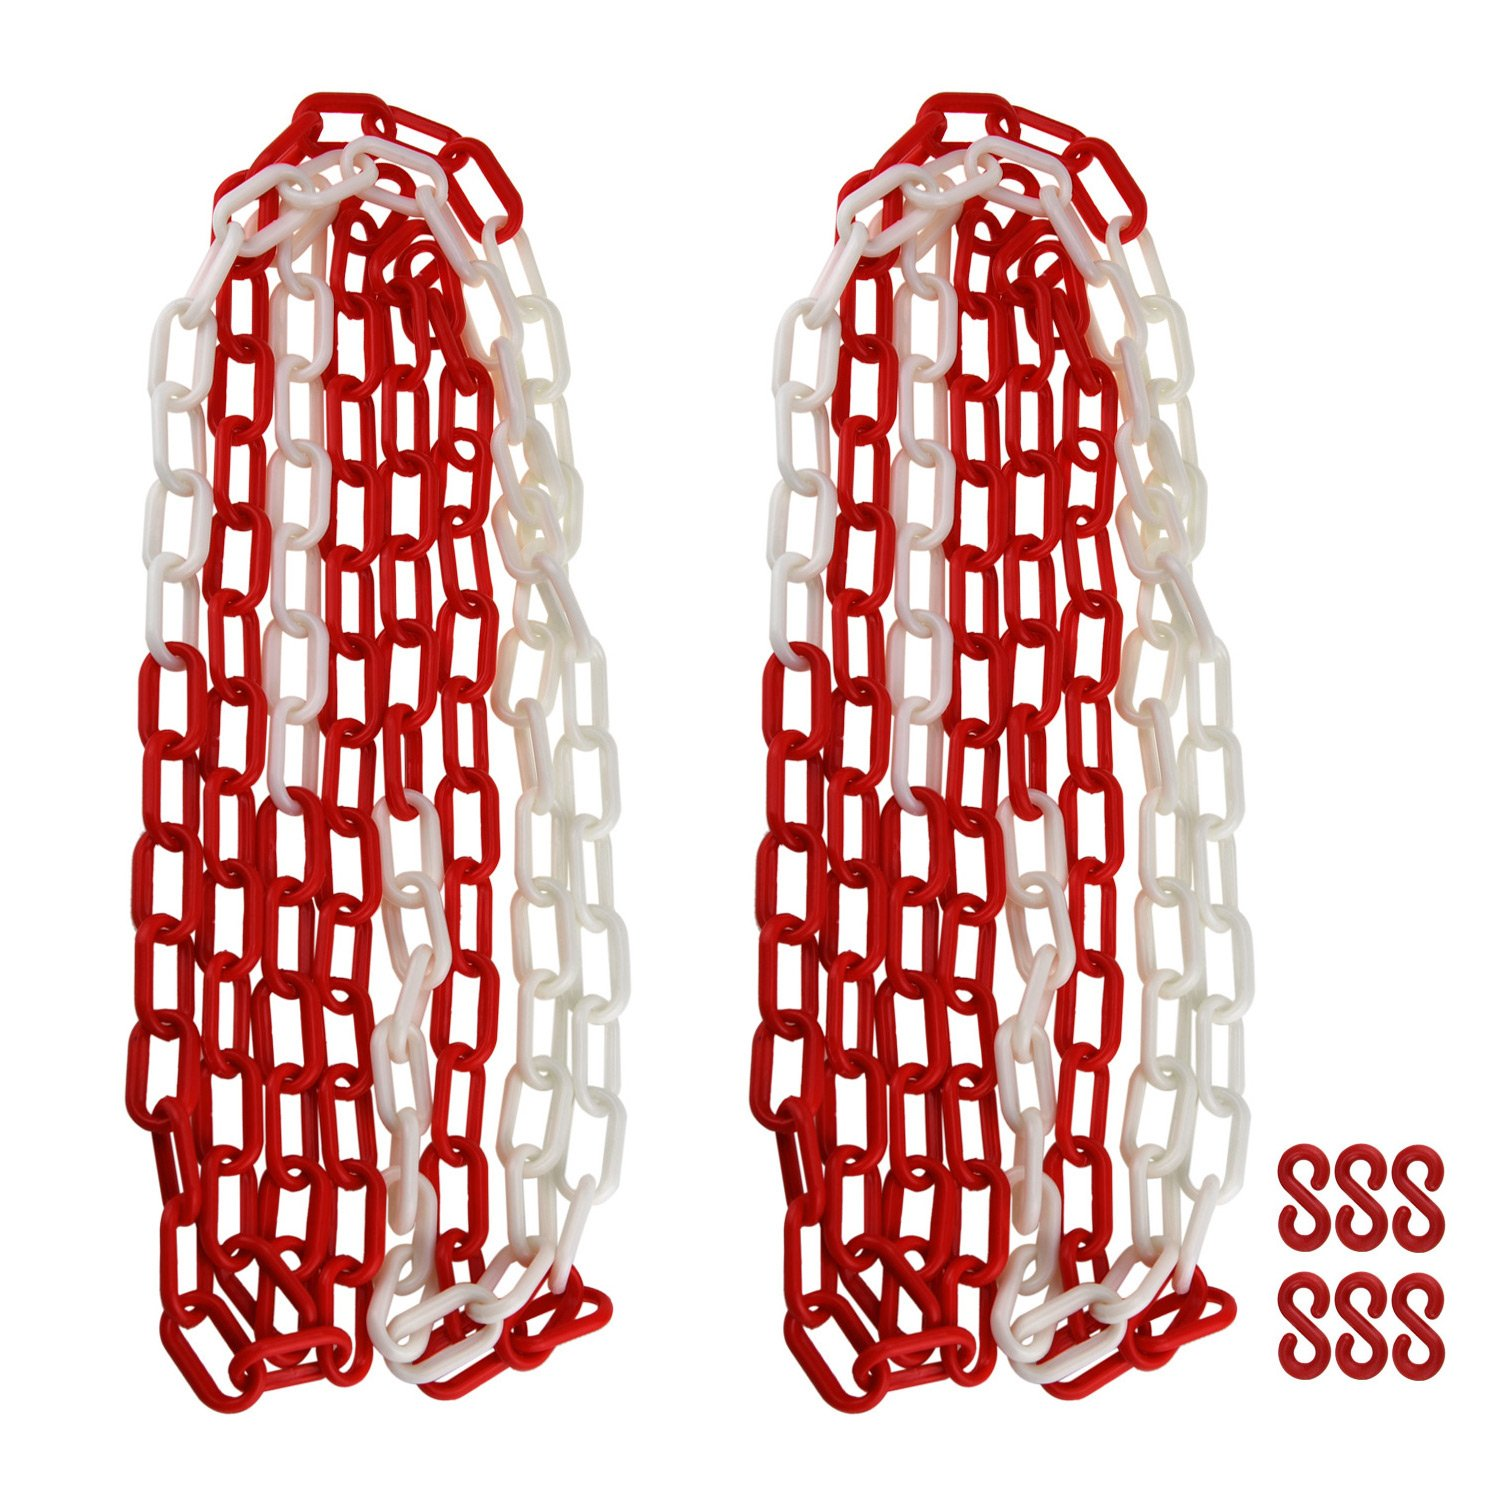 NKTM 2 Pack Plastic Chain, 20 Feet Commercial Safety Barrier for Traffic, Crowd Control, Queue Line - White and Red